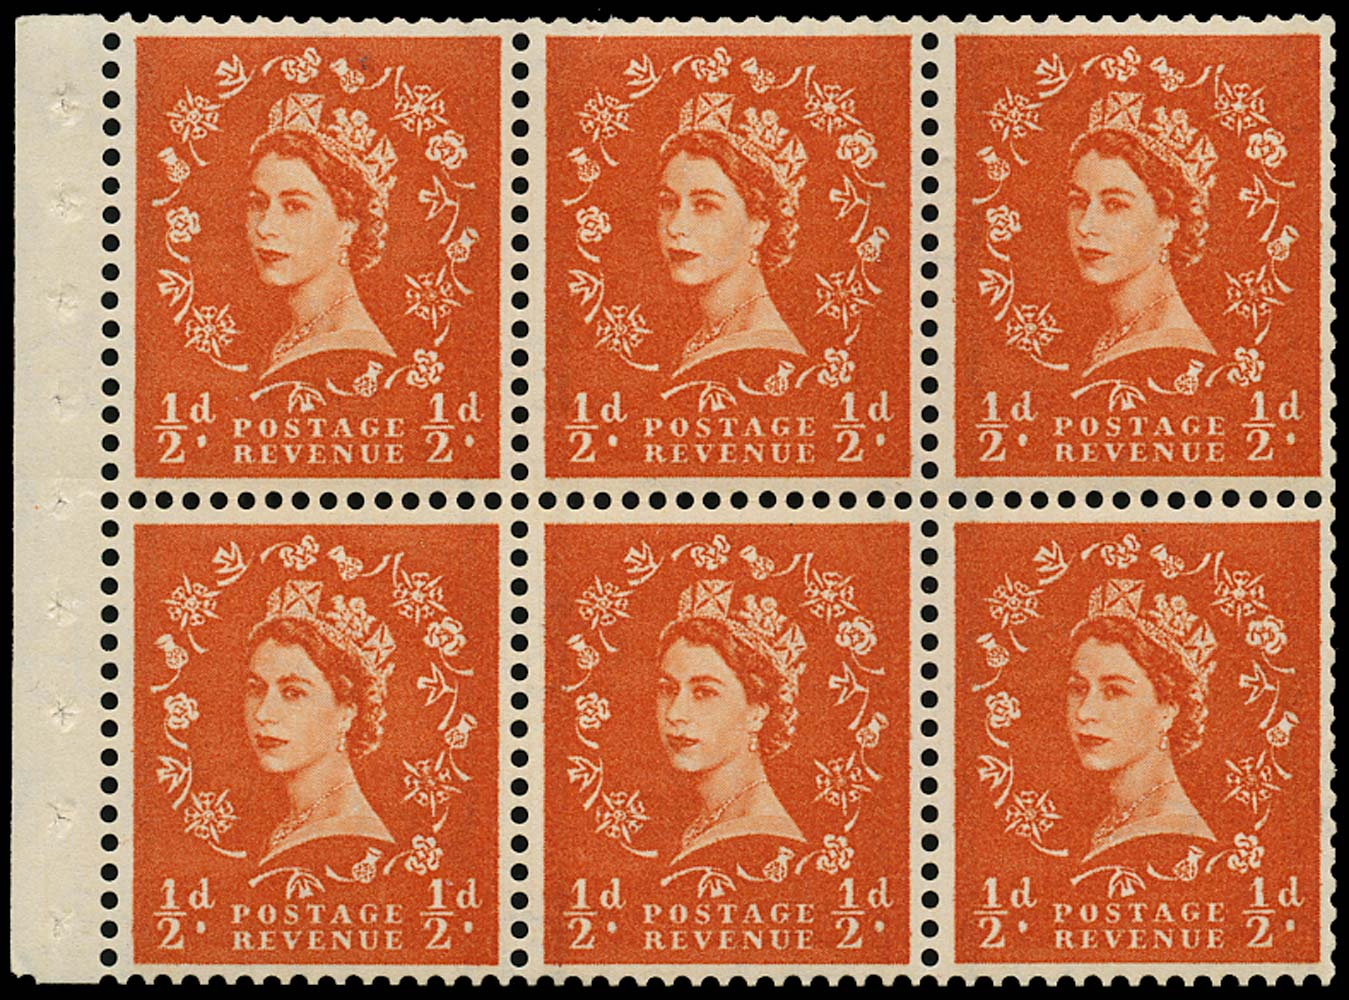 GB 1959  SG587l Booklet pane booklet pane of six